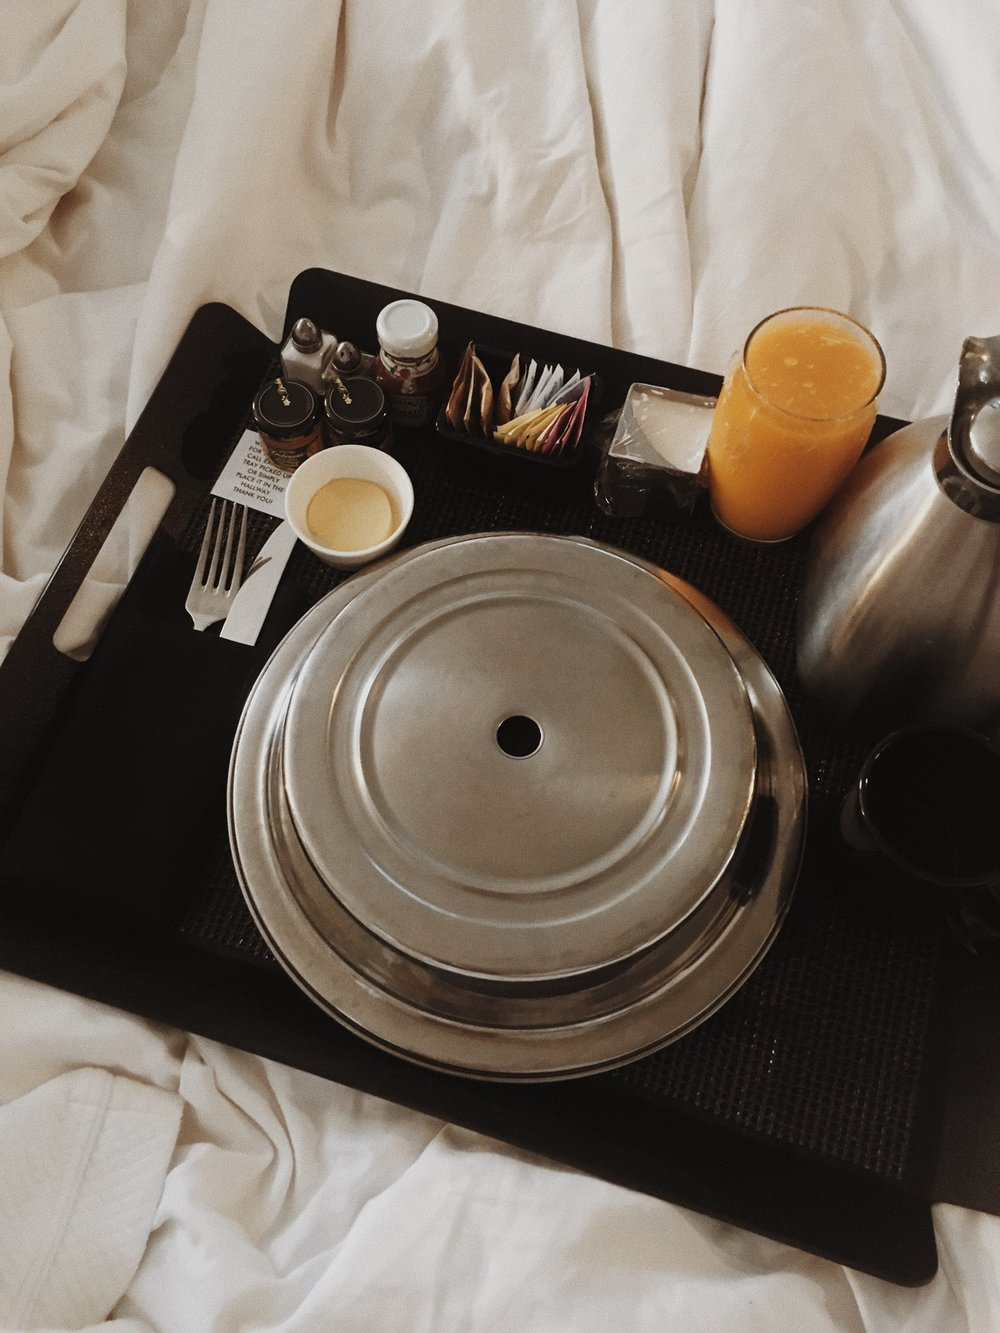 Breakfast in bed? Heck yes! Room service at the Hotel Republic did not disappoint.